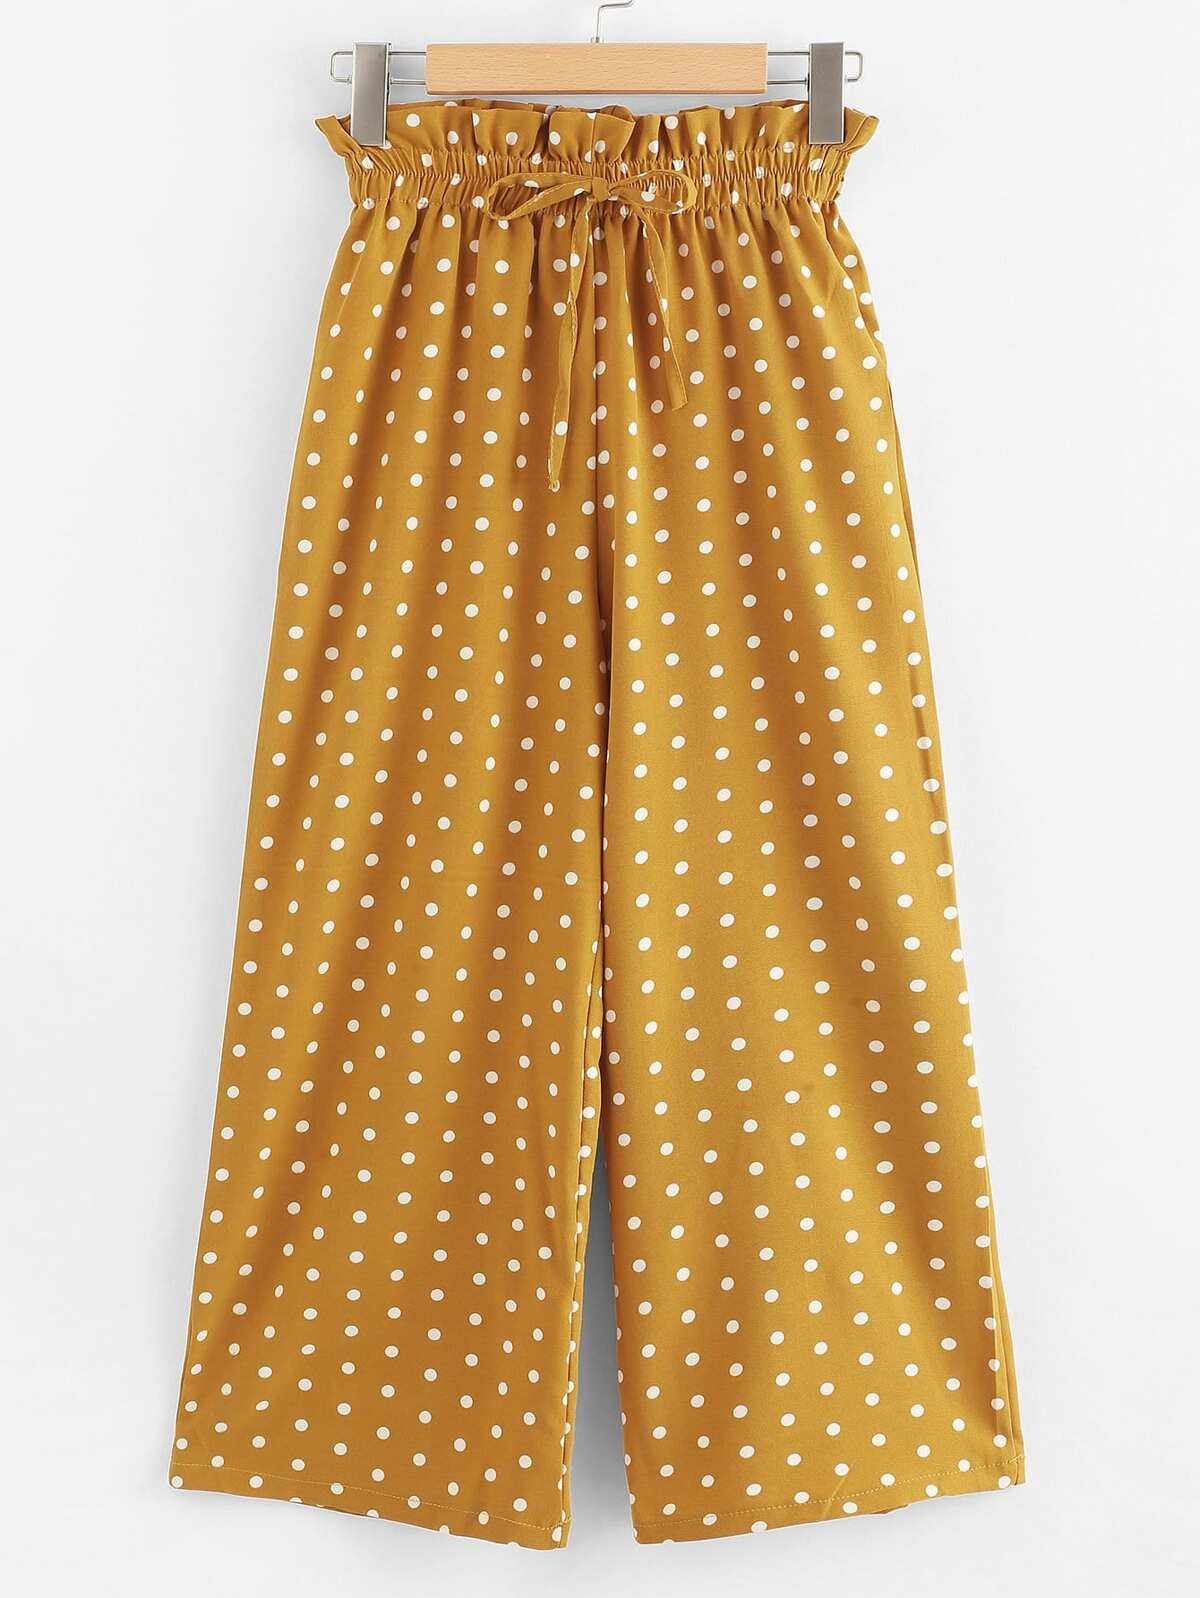 Frill Trim Polka Dot Pants by Romwe